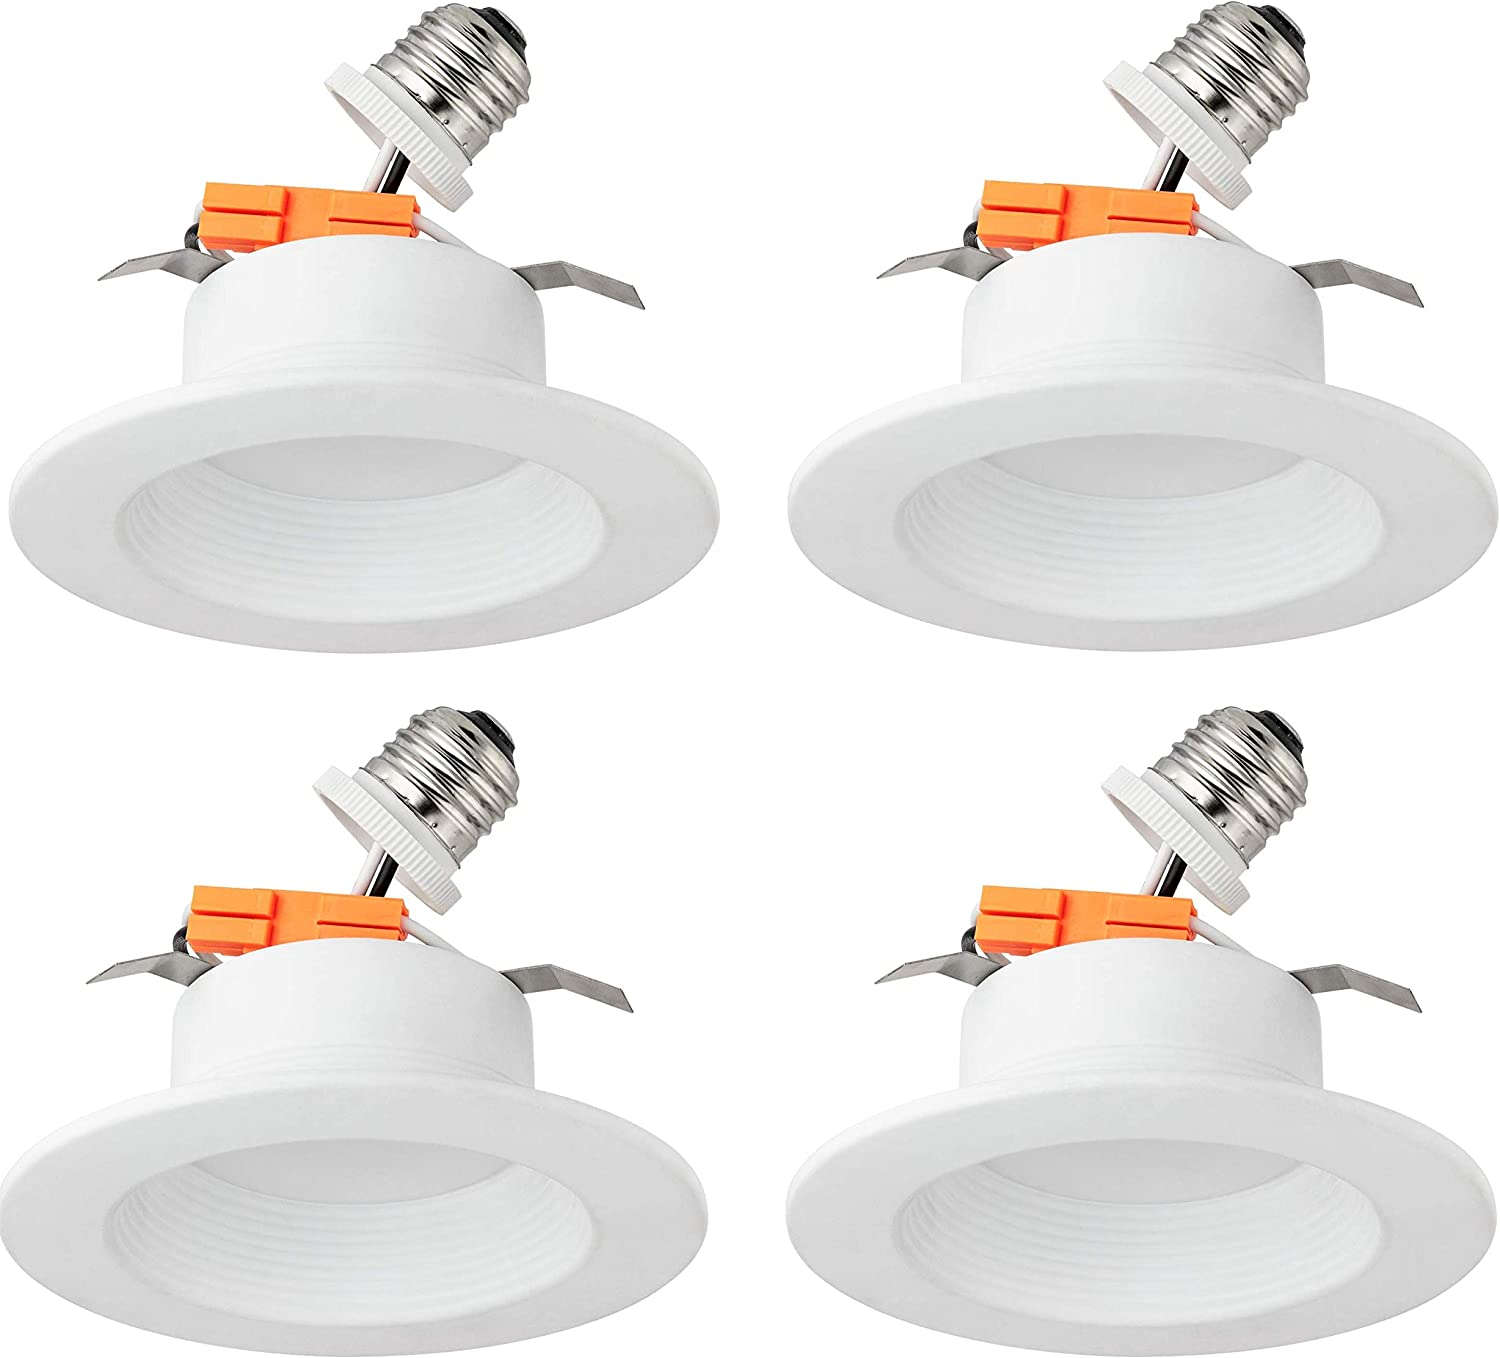 """Dimmable LB13135 4/"""" LED Downlight Square 4-Pack 700 Lumens 75W Energy Star /& UL 3500K Soft White Glow 10W LED Recessed Ceiling Light Waterproof Retrofit LED Recessed Lighting Fixture"""